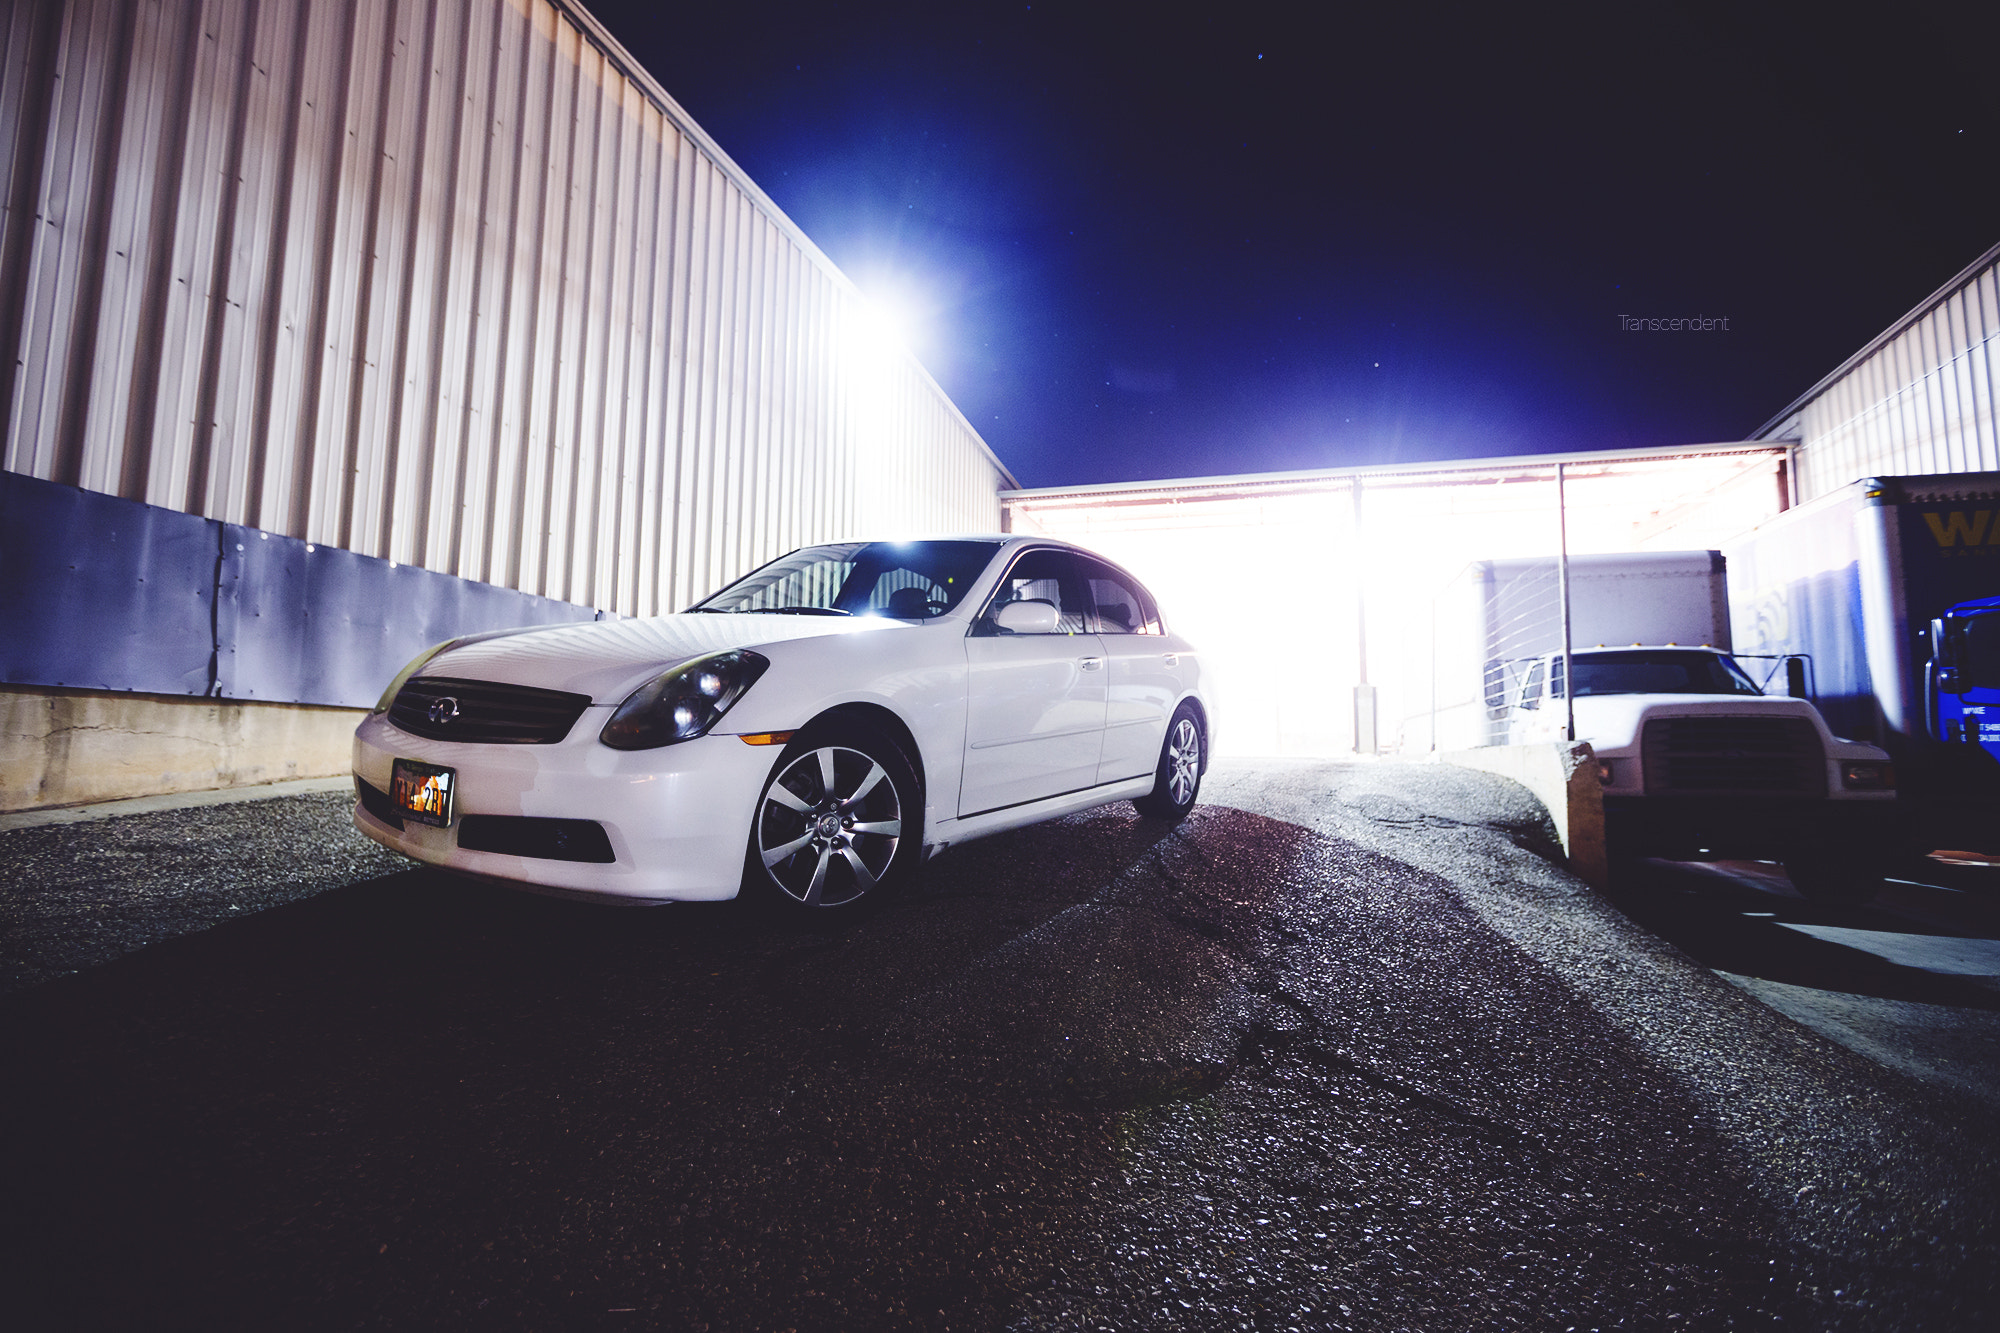 Photograph Infiniti G35 by Transcendent Productions on 500px